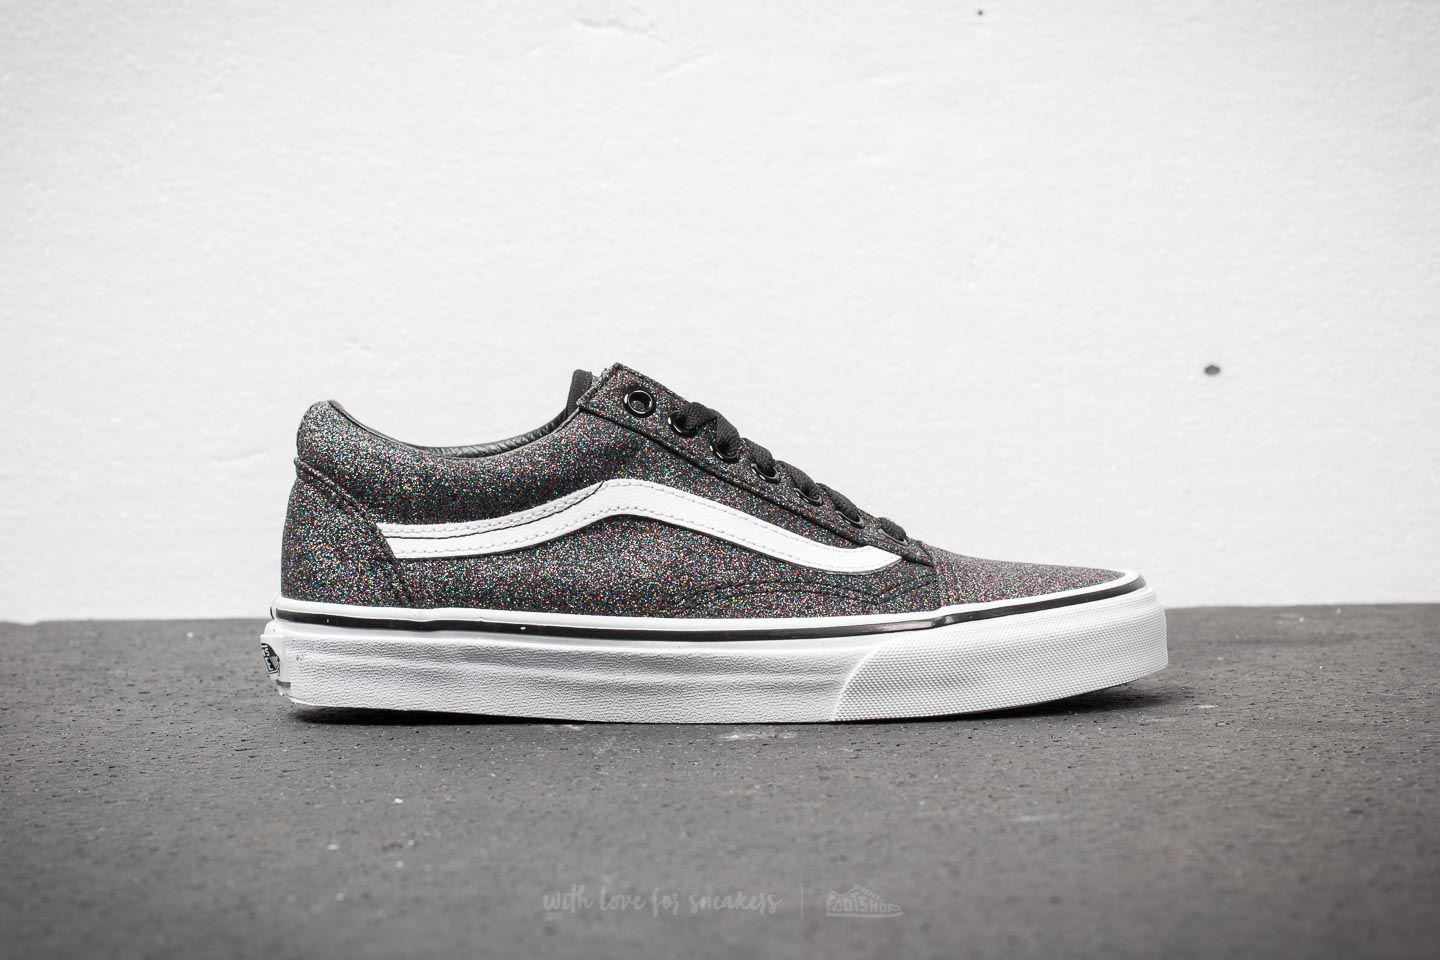 584efb4d7373 Vans Old Skool (glitter) Rainbow Black in Black for Men - Lyst